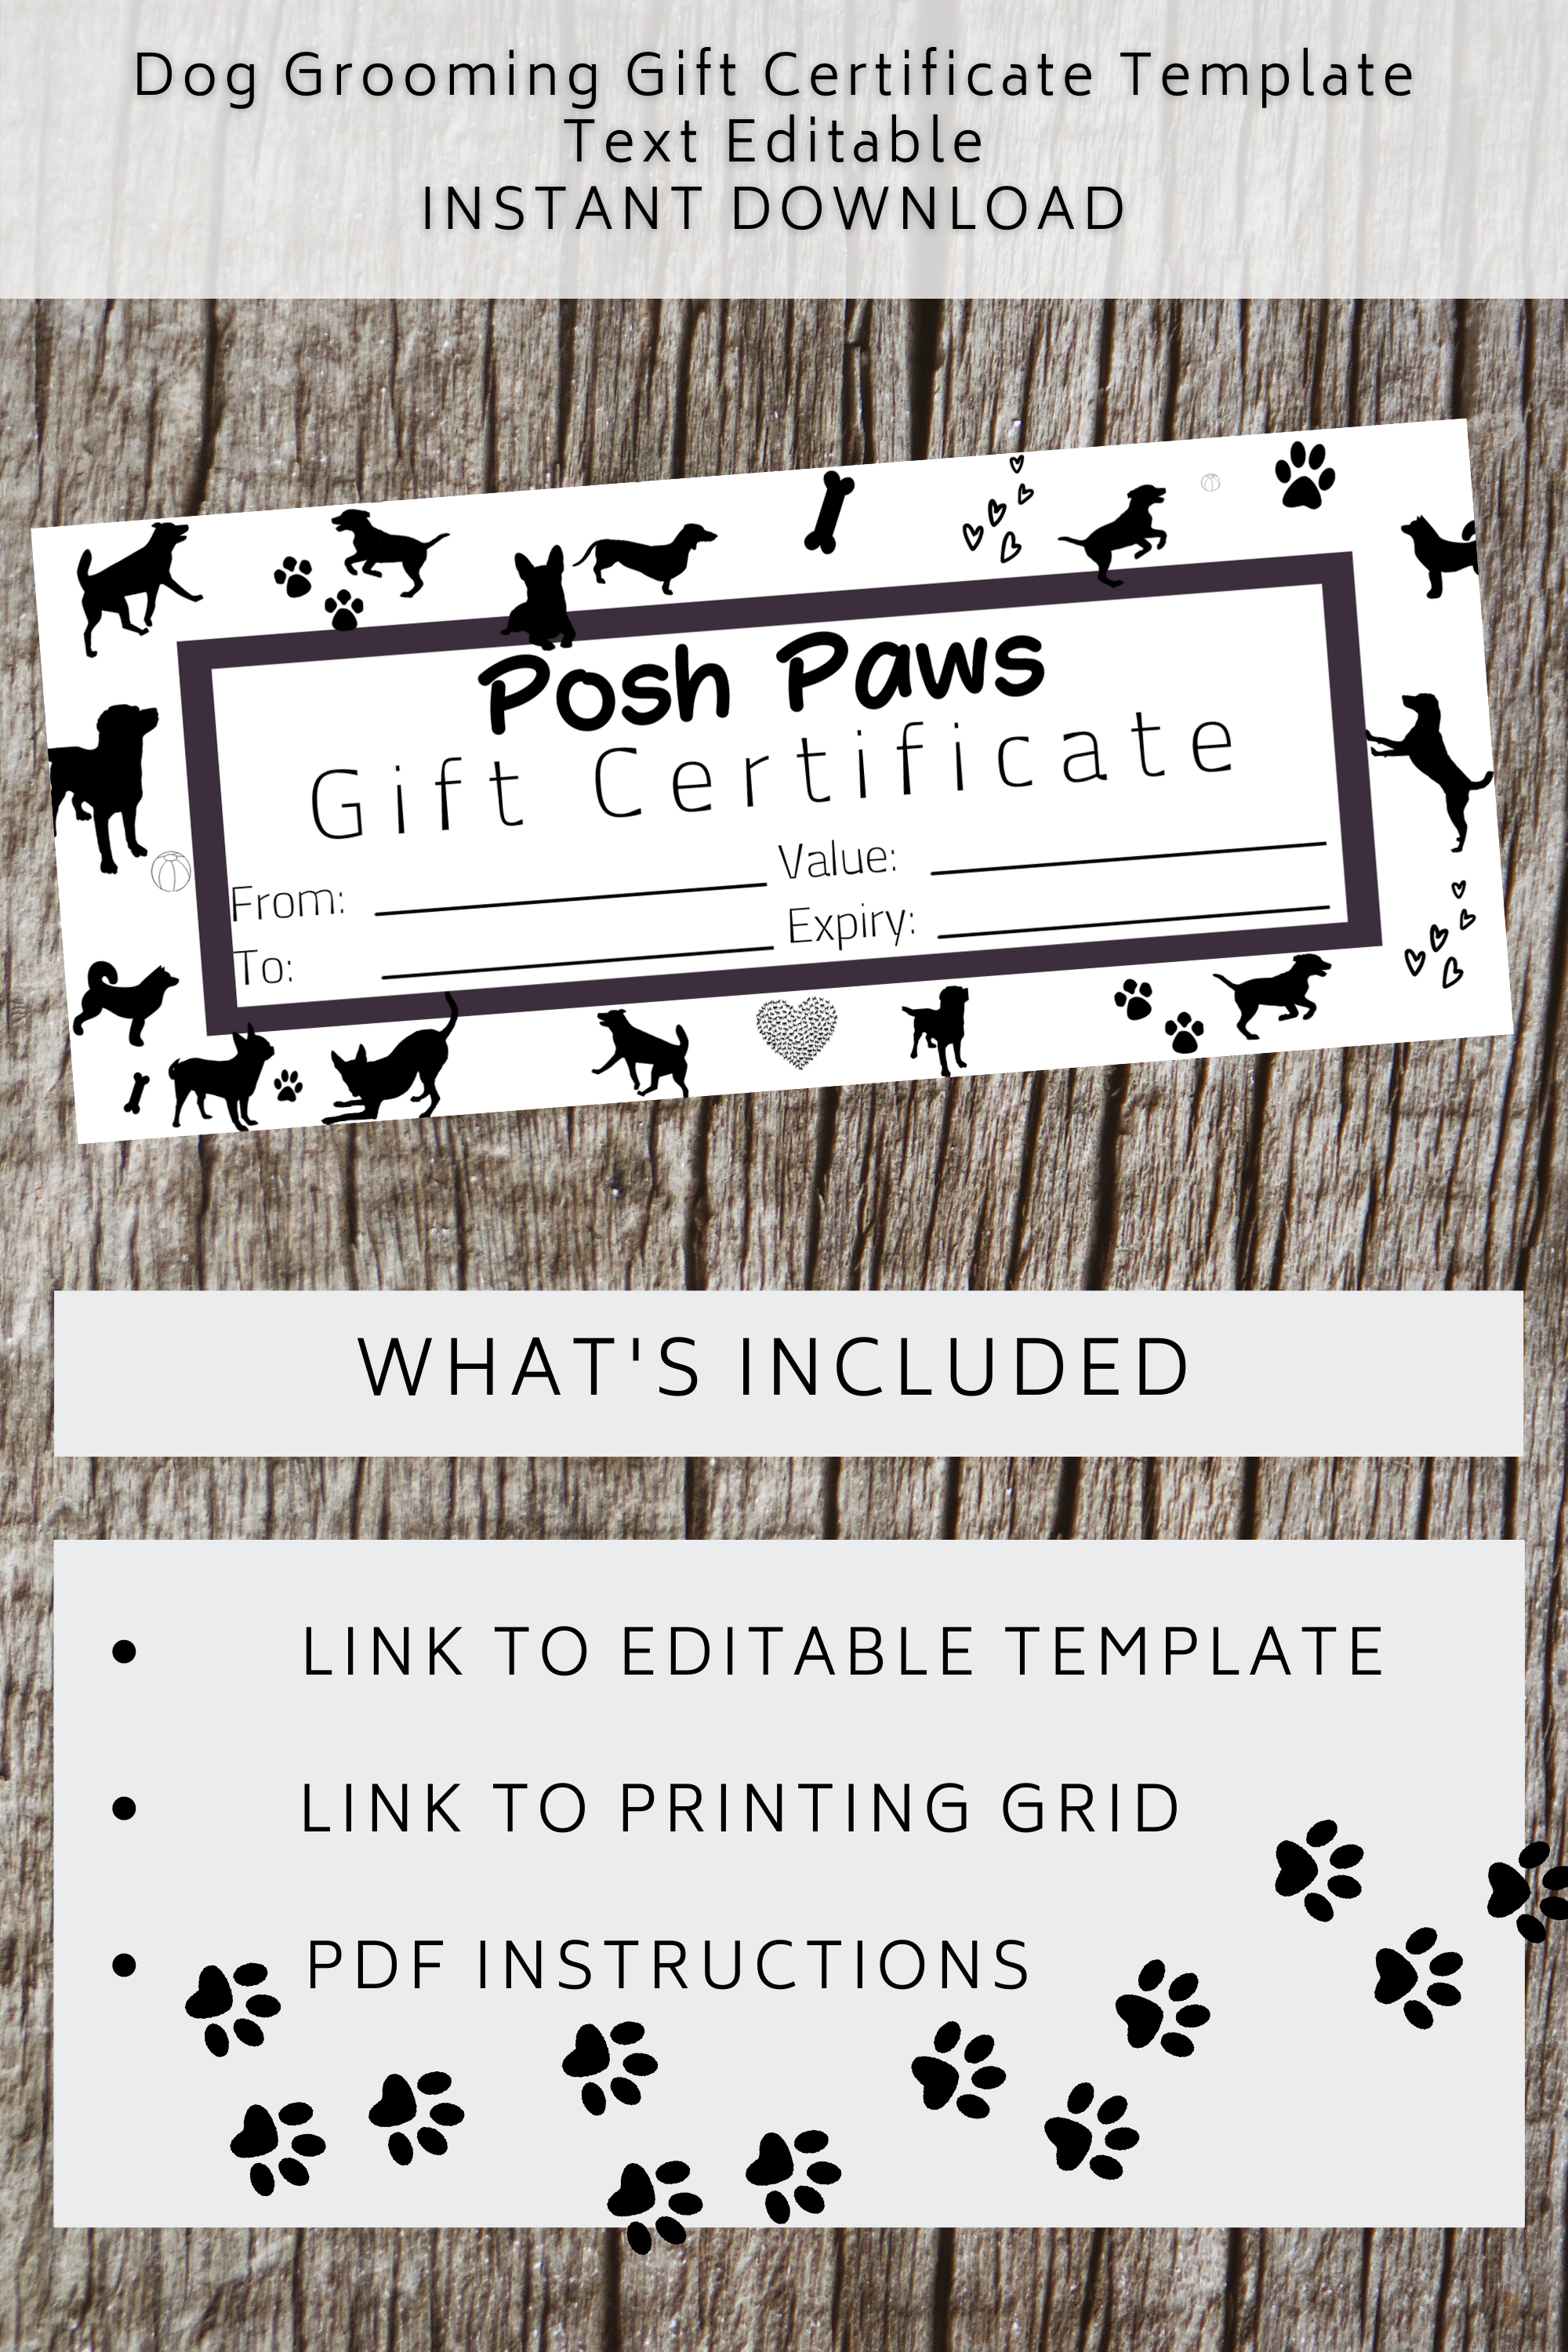 Gift Certificate Template Dog Grooming Diy Gift Voucher For Small Business Add Your Logo Editable Digital Download Gift Certificate Template Certificate Templates Gift Certificates